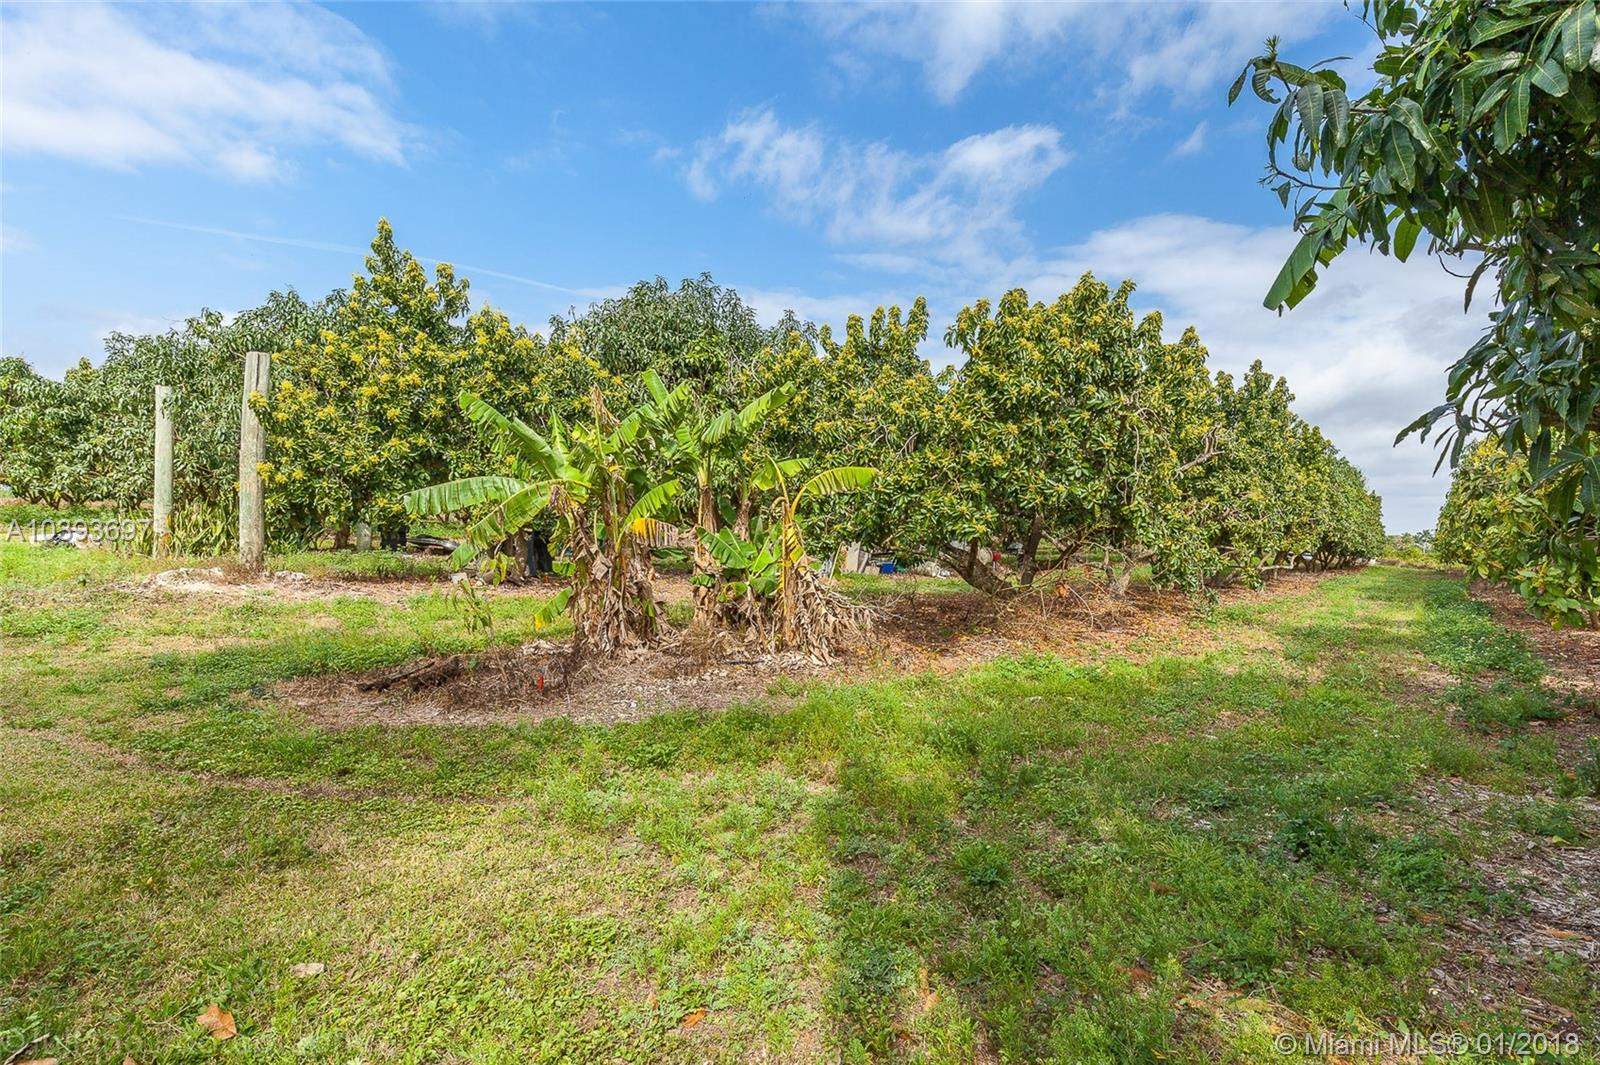 189 Ave Sw 264 St, Homestead FL, 33031